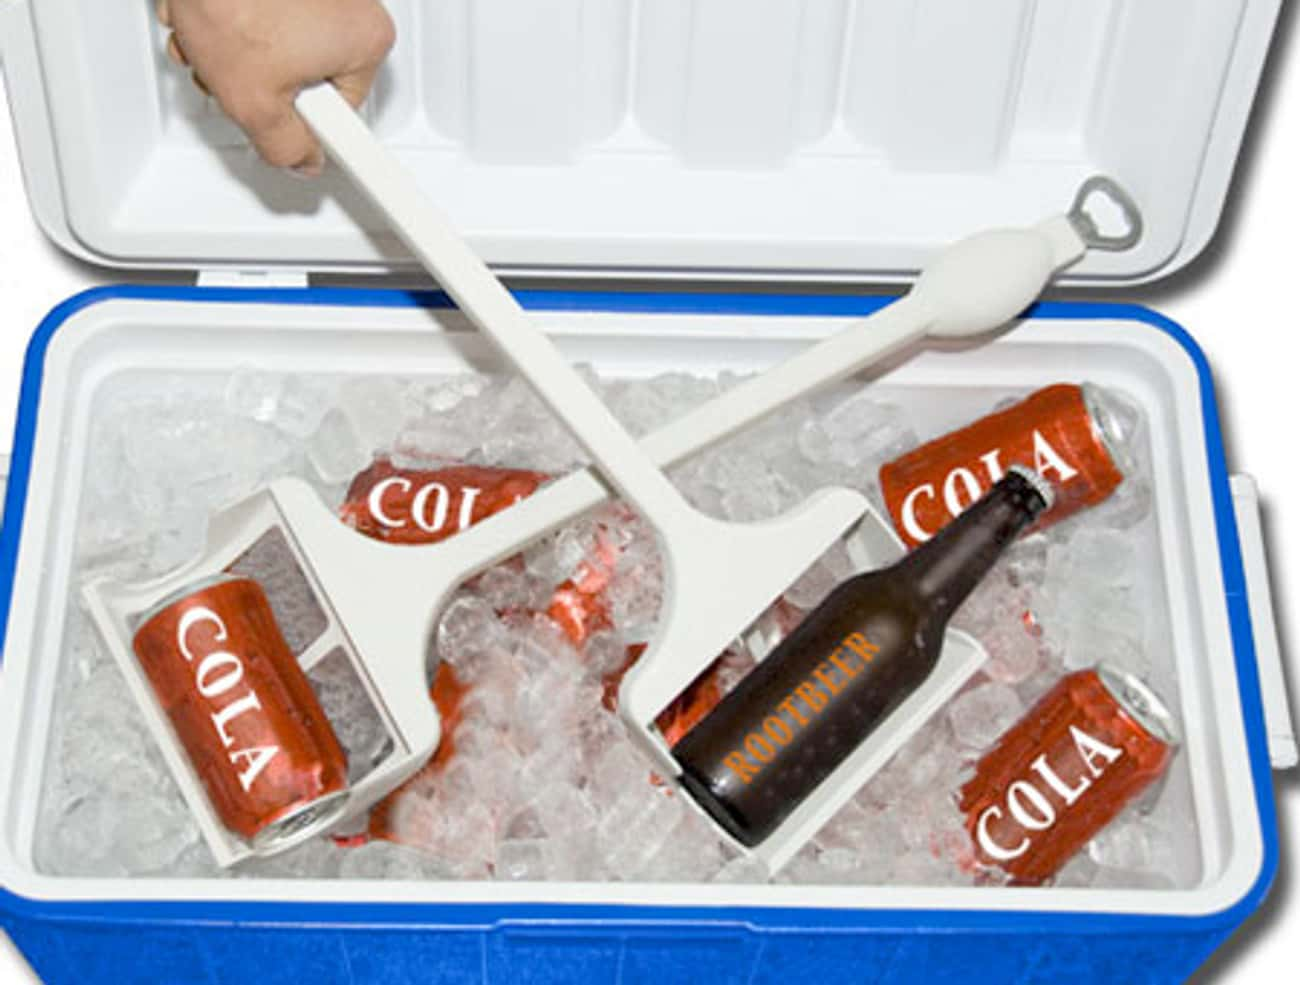 Beer Scooper is listed (or ranked) 3 on the list Products for People Who Love Booze